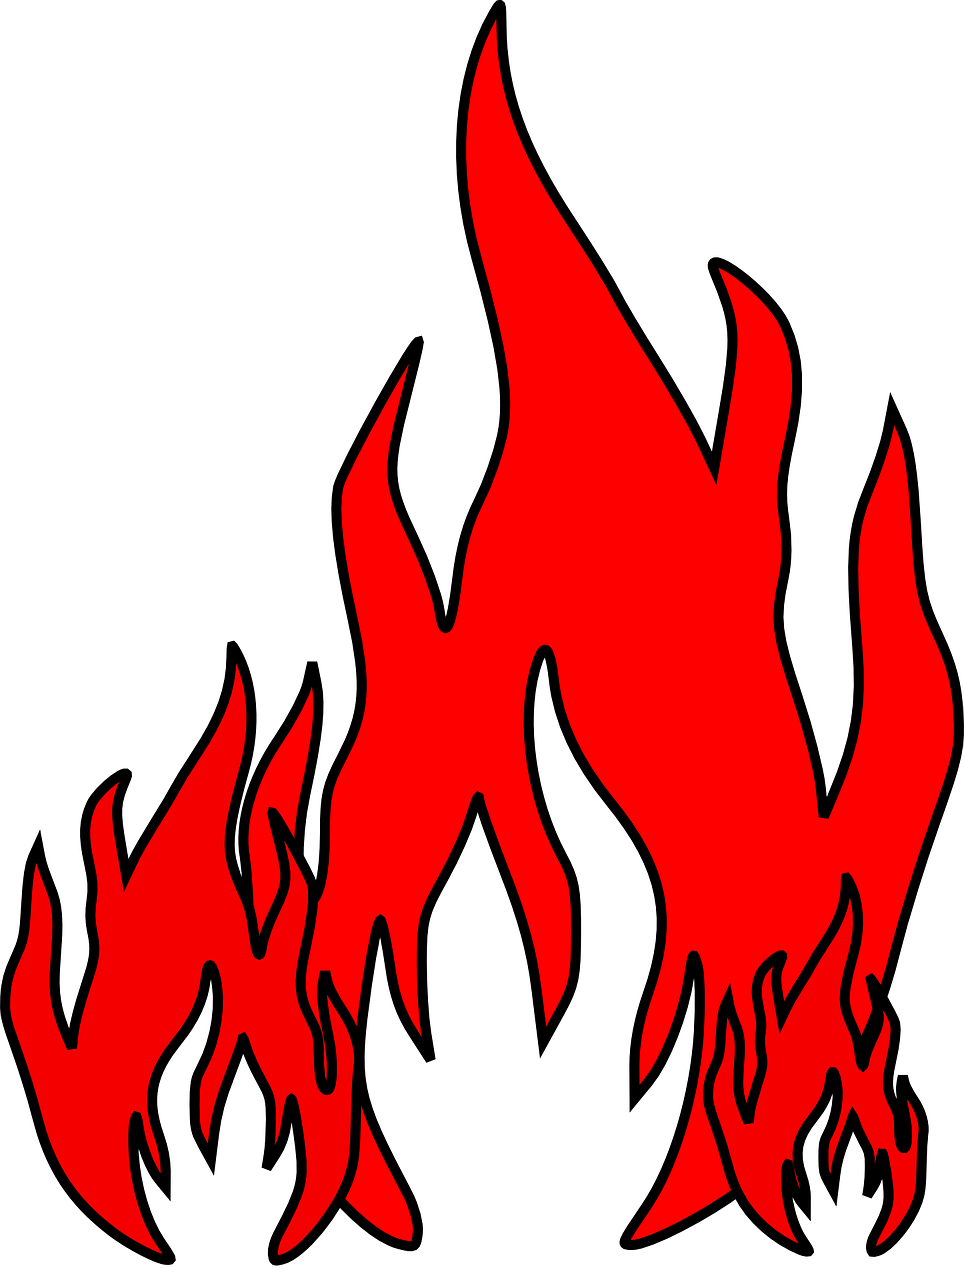 How to draw flames fire - free stencils 6